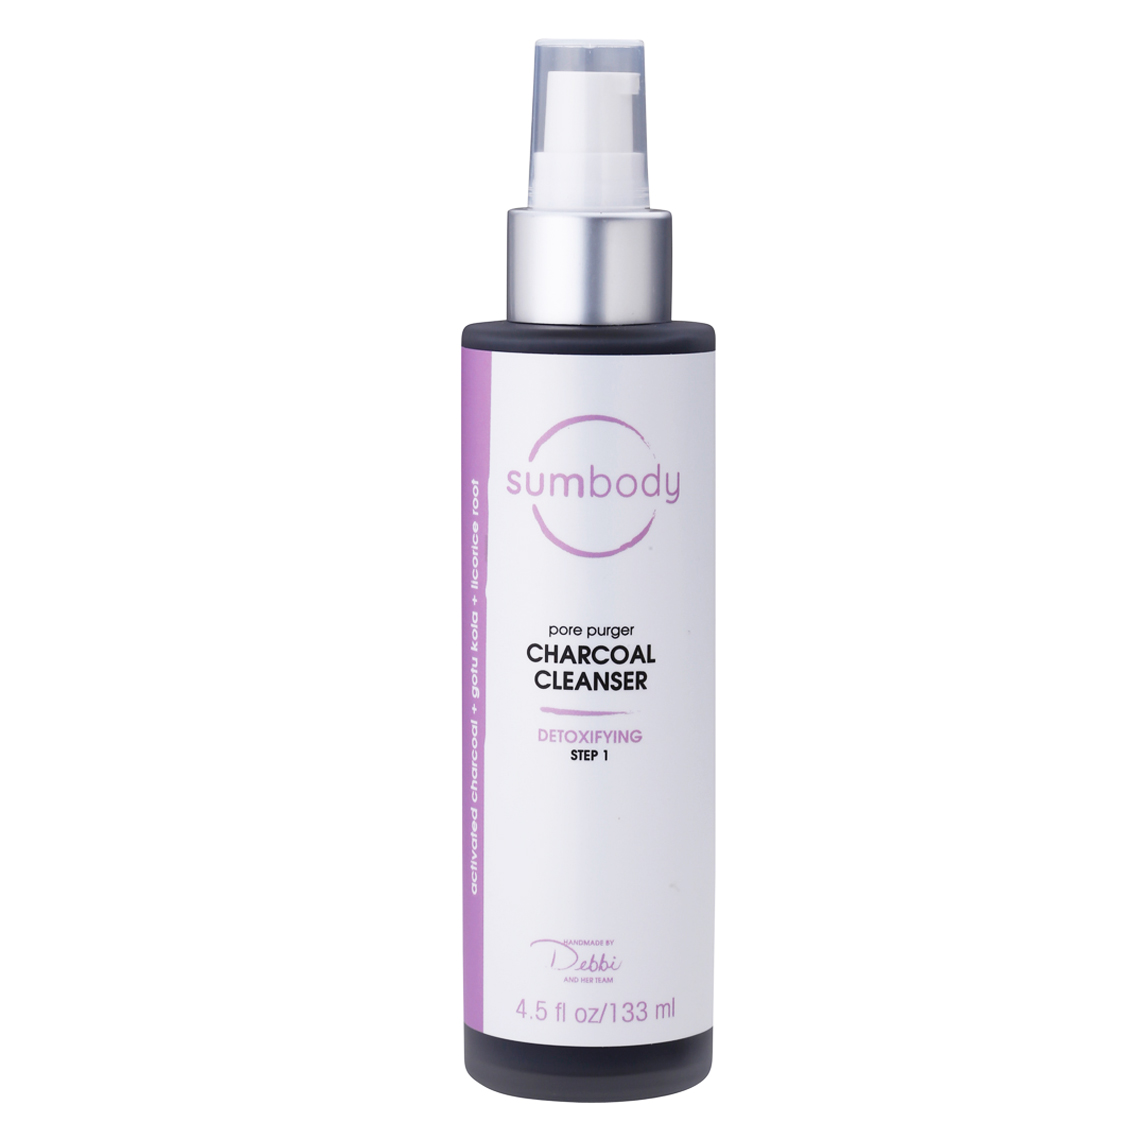 sumbody charcoal cleanser